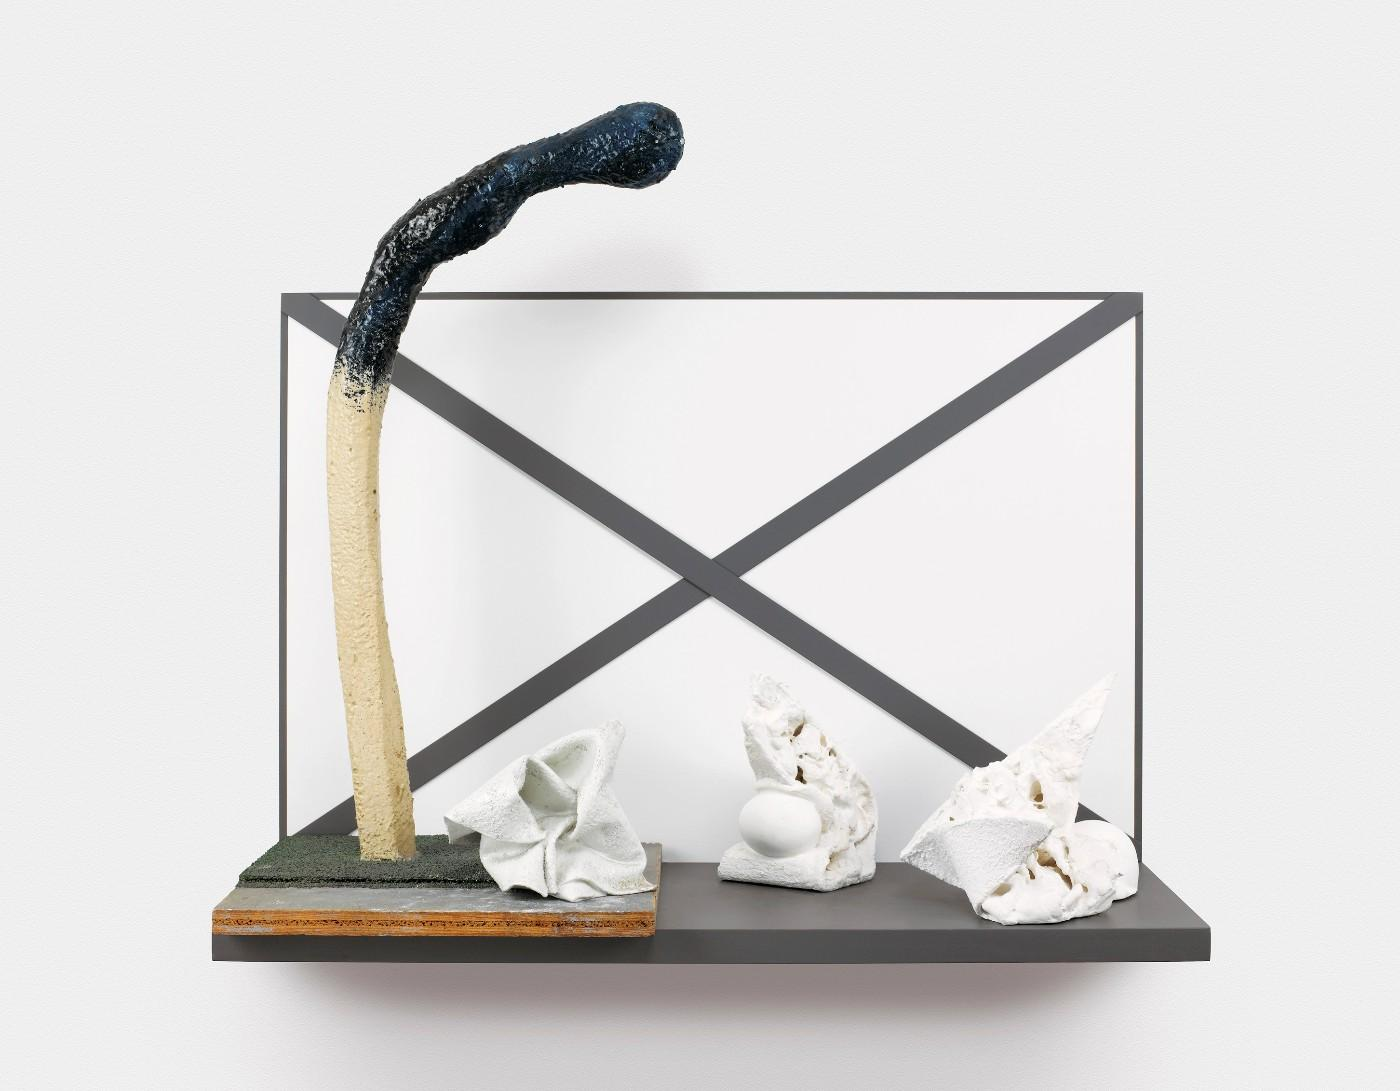 Claes Oldenburg (American (born in Sweden, 1929)), Shelf Life Number 14, 2016-2017